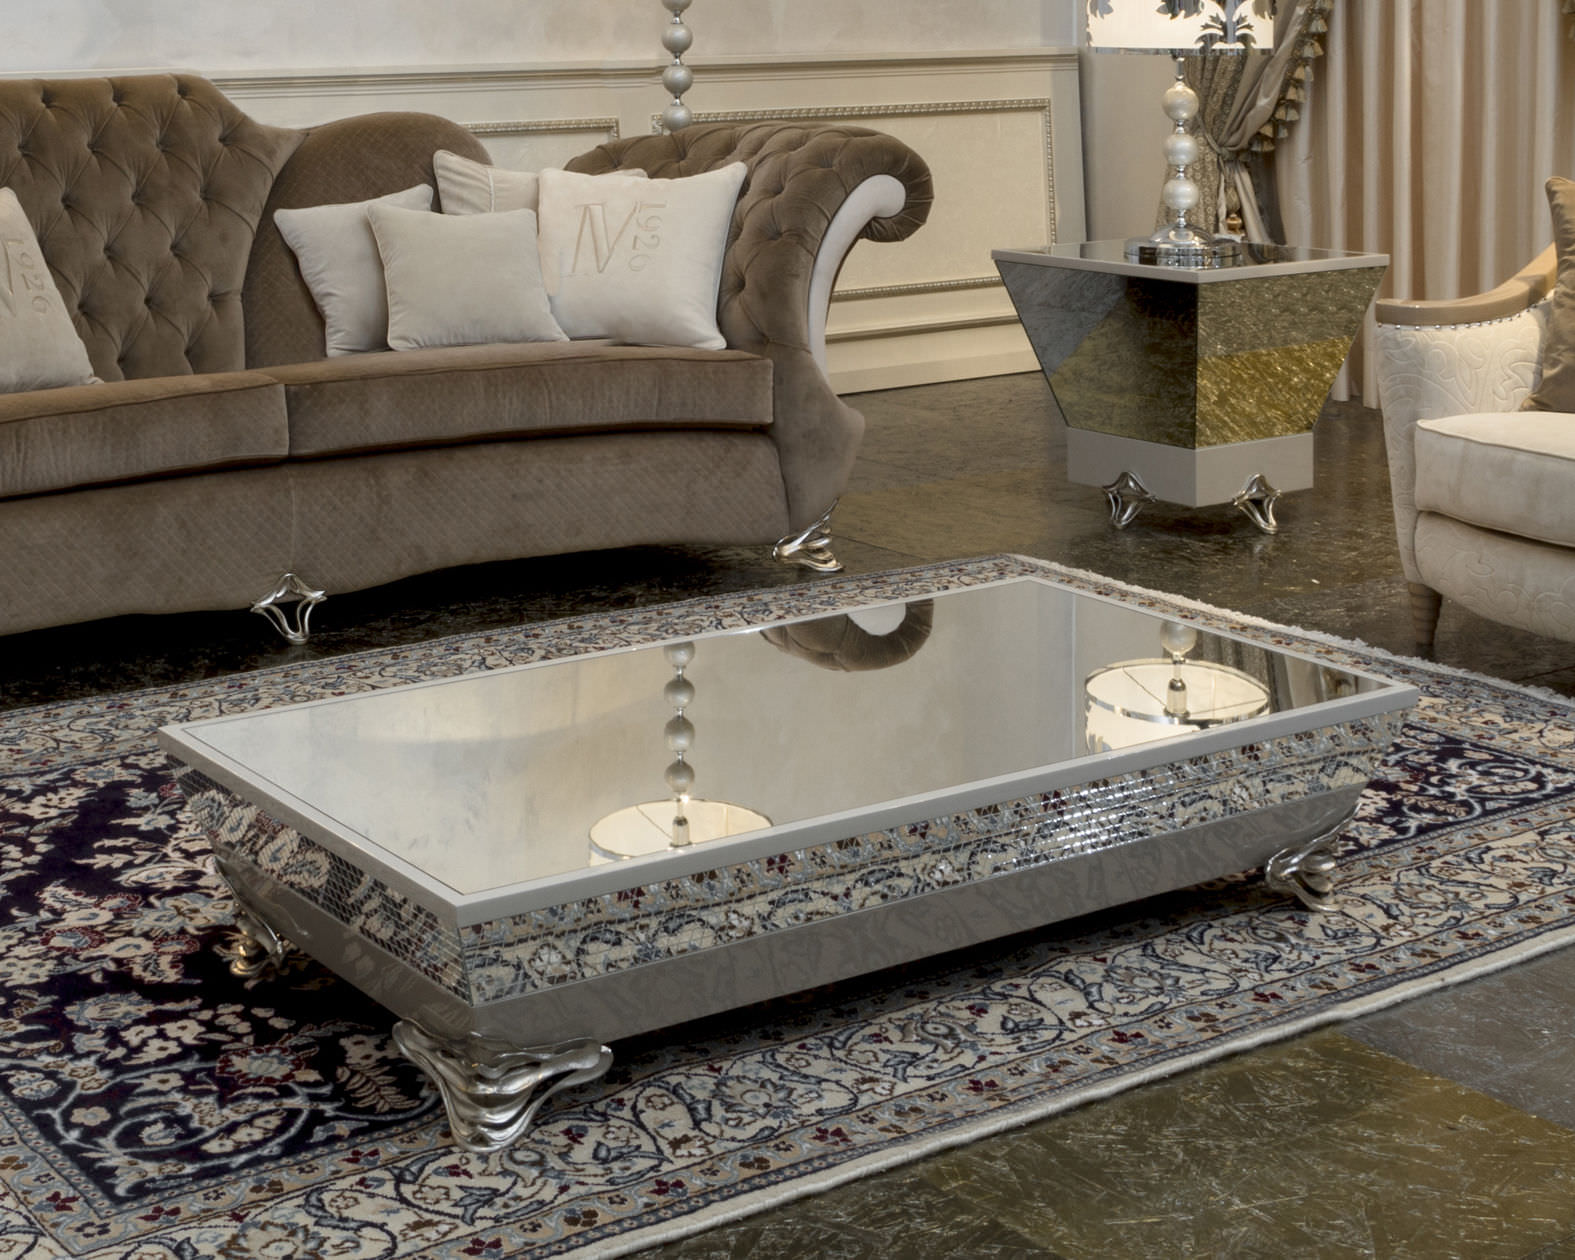 Luxury Mirrored Coffee Table Image And Description